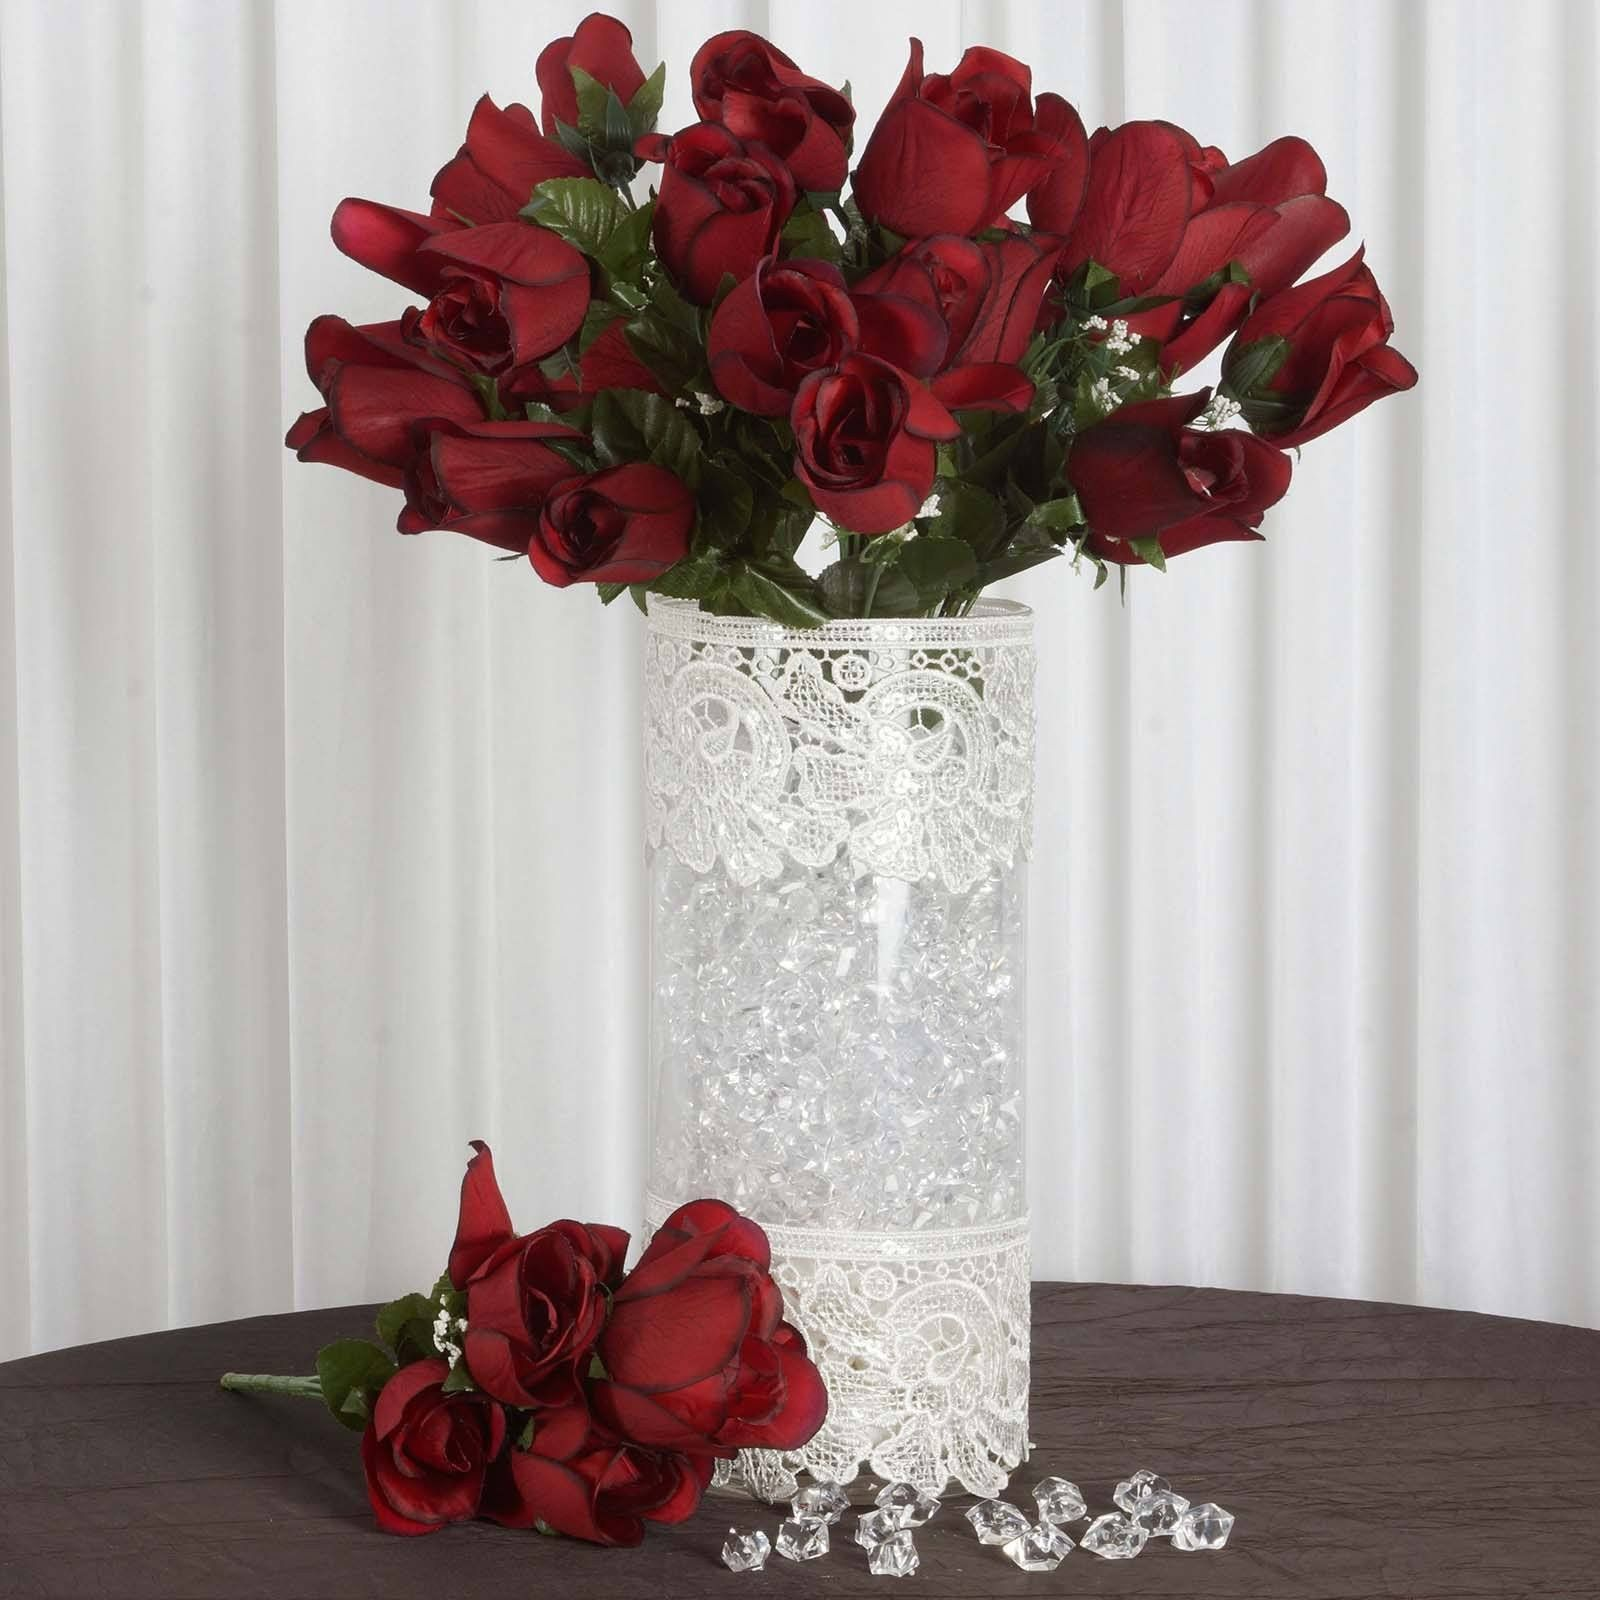 84 Artificial Velvet Rose Buds - Black/Red | Rose buds and Products